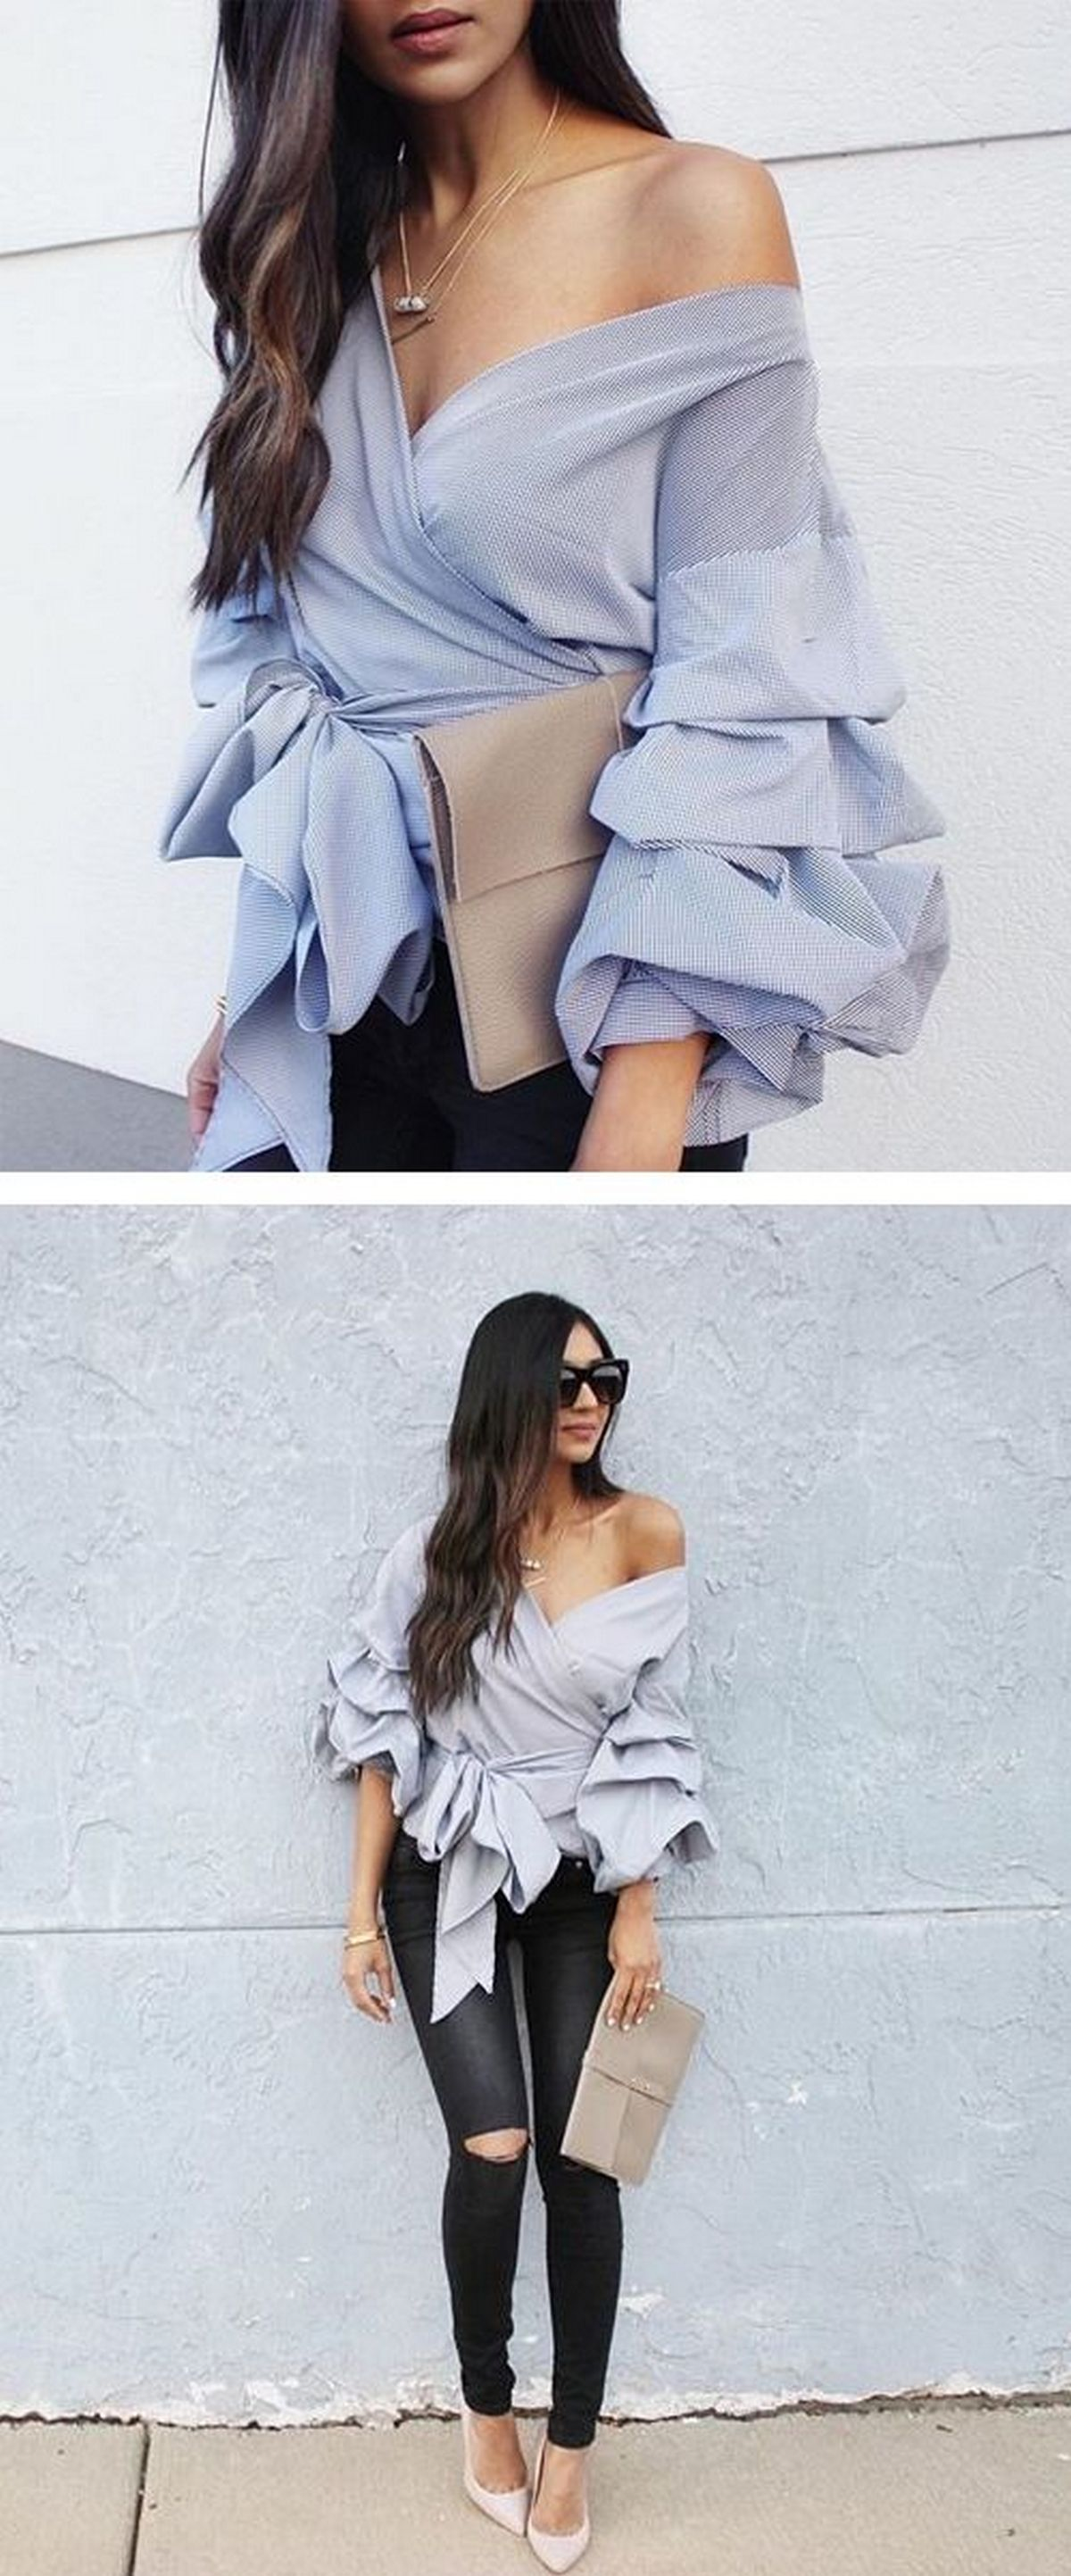 Blouse design idea and inspiration 003 fashion